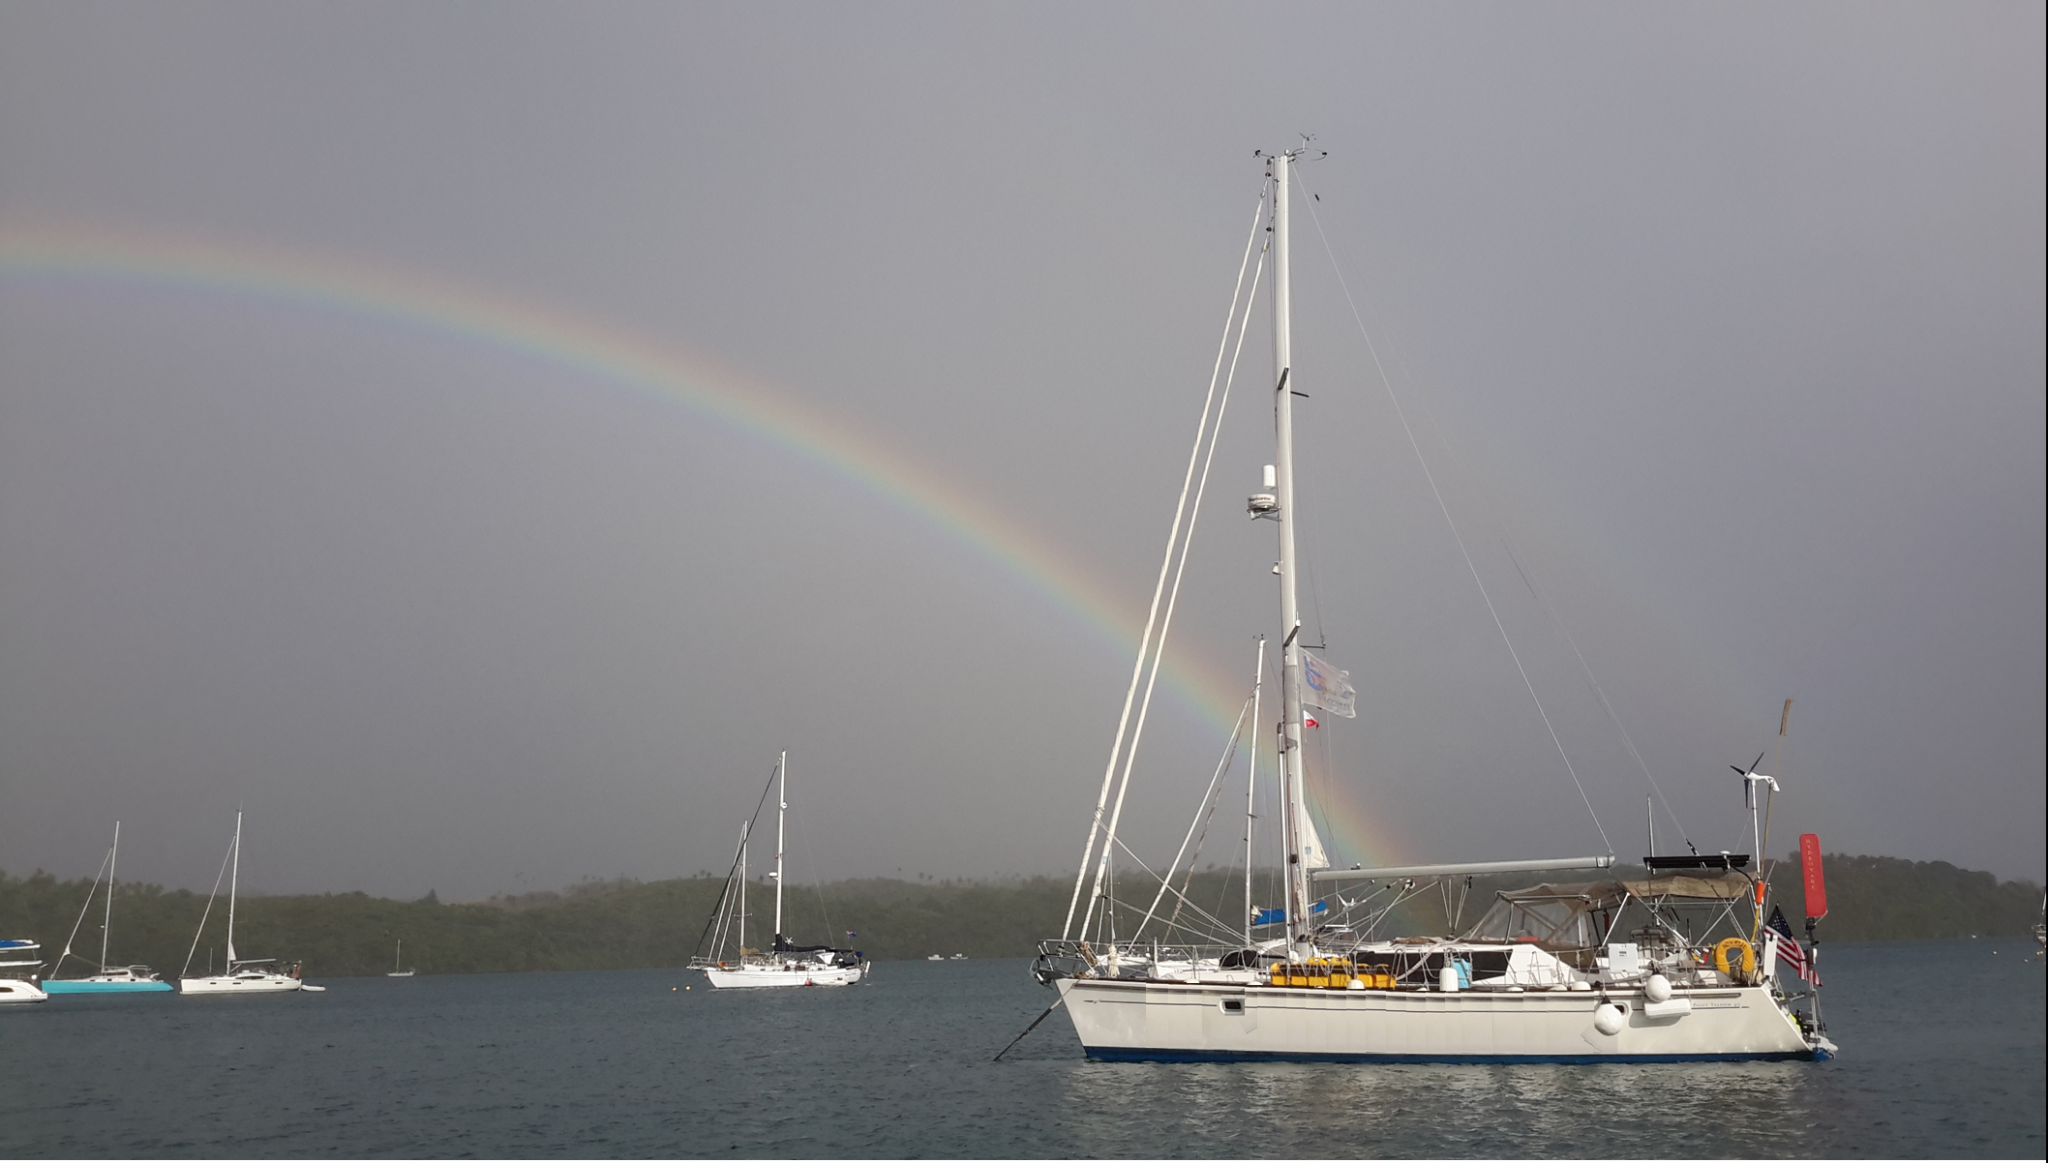 23. Joyful with a double rainbow in Tonga